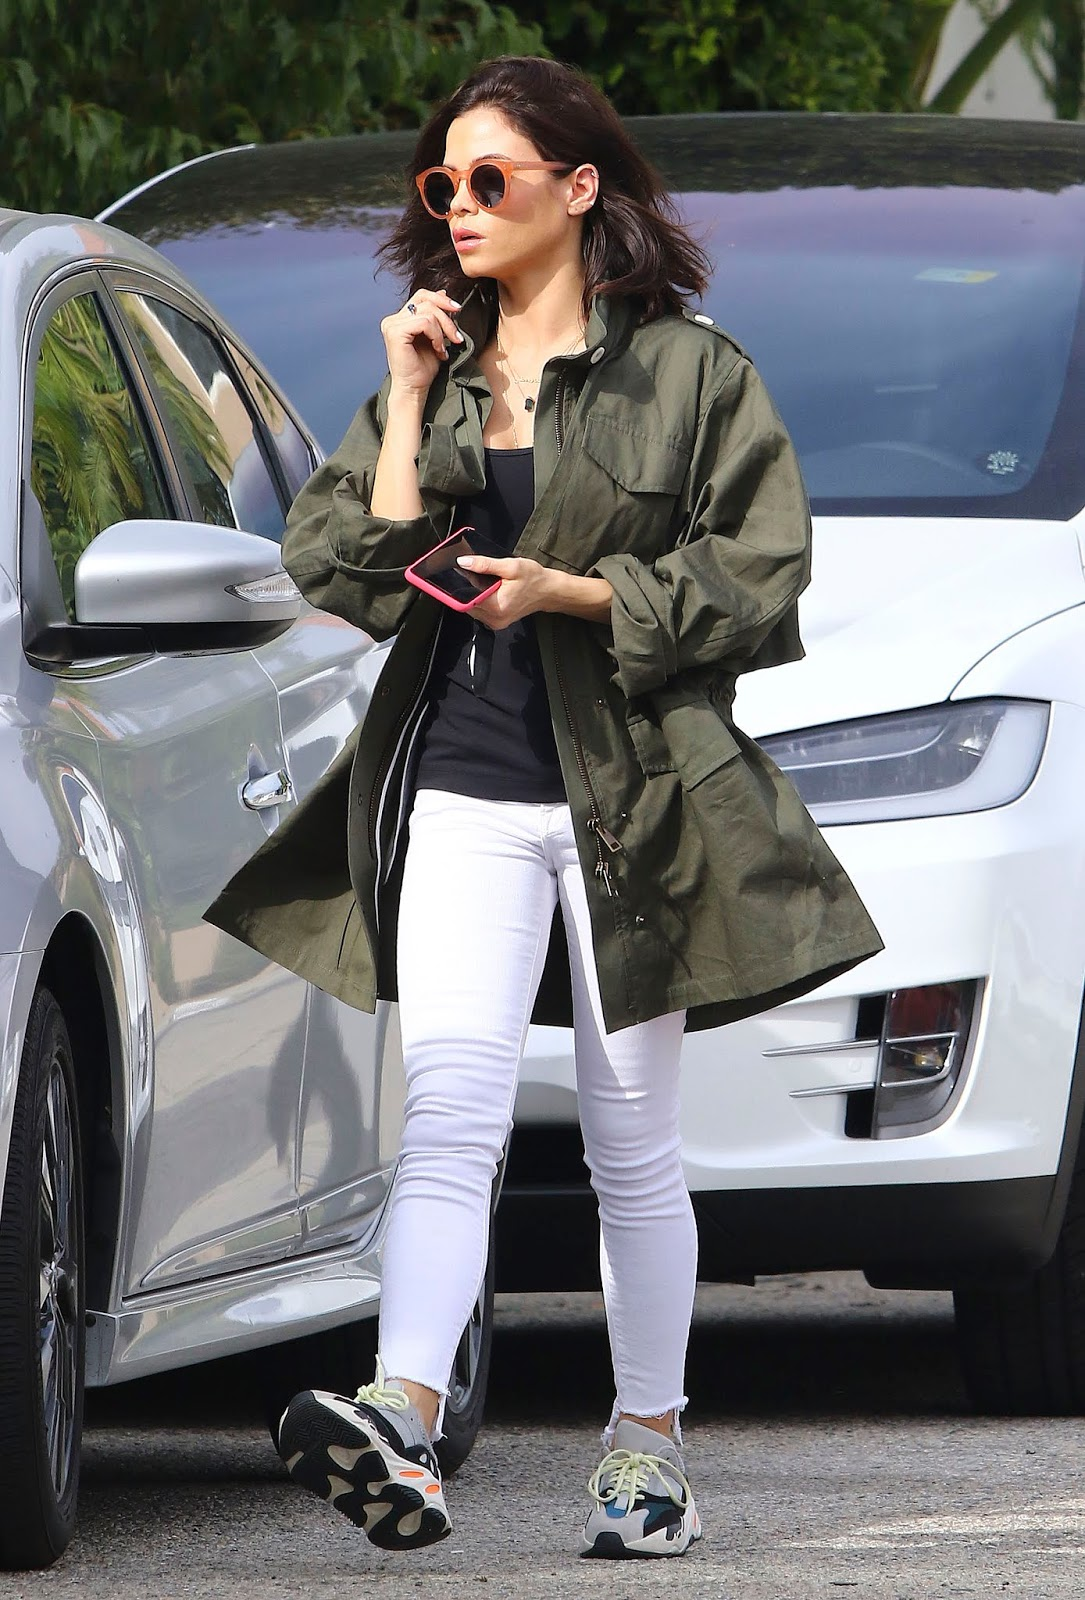 Jenna Dewan - Out and about in LA January 29, 2019